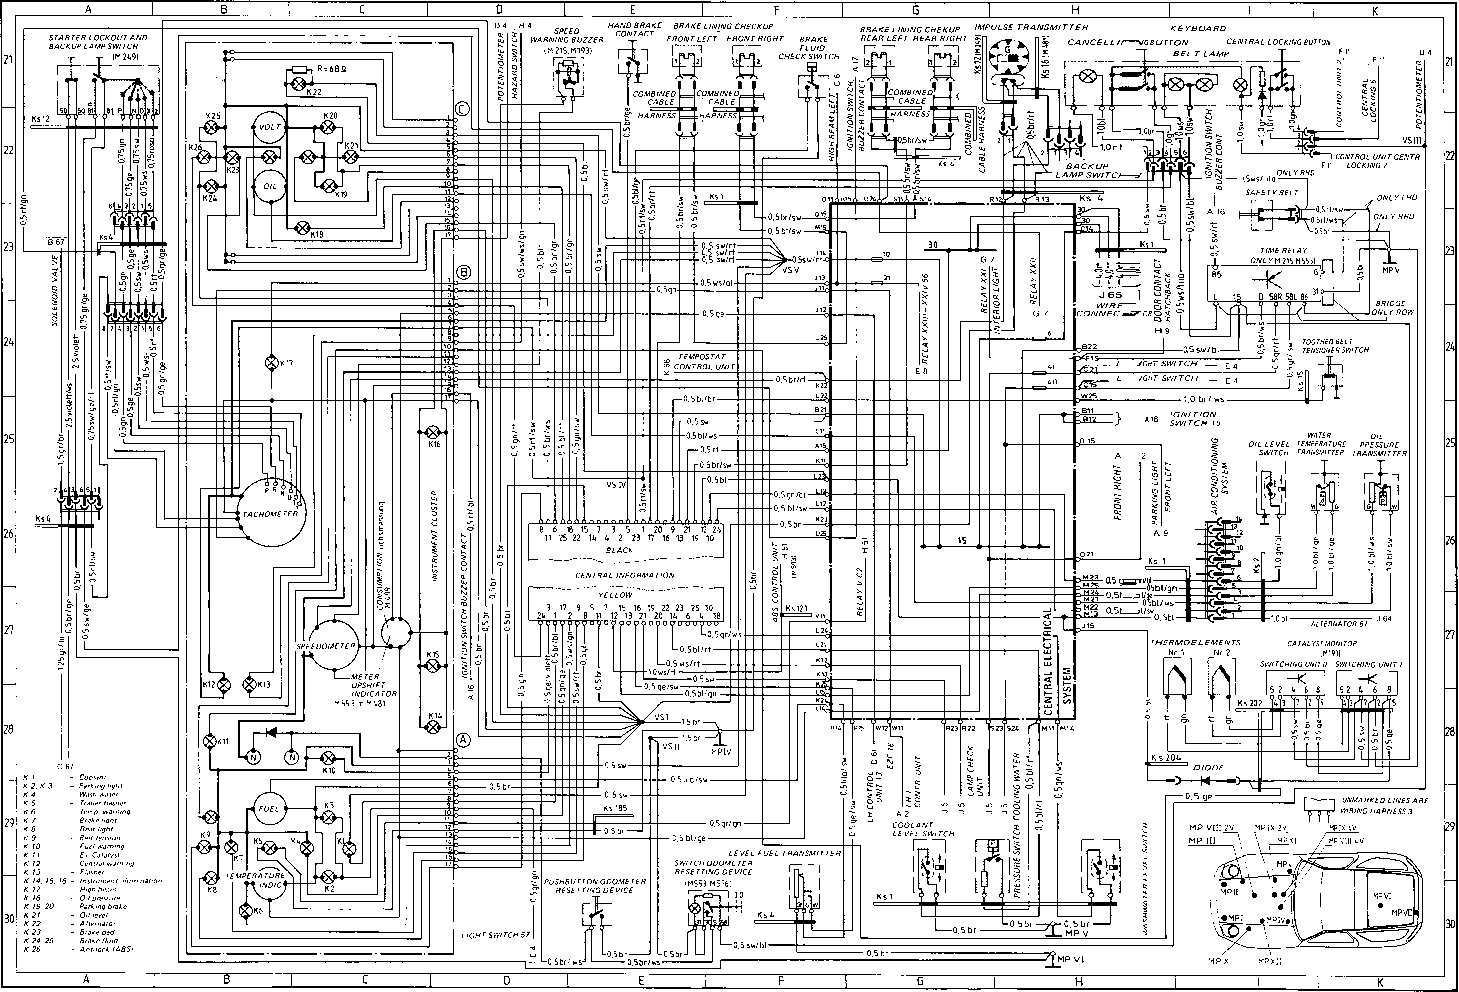 wiring diagram type 928 s model 86 page - porsche 928 repair, Wiring diagram